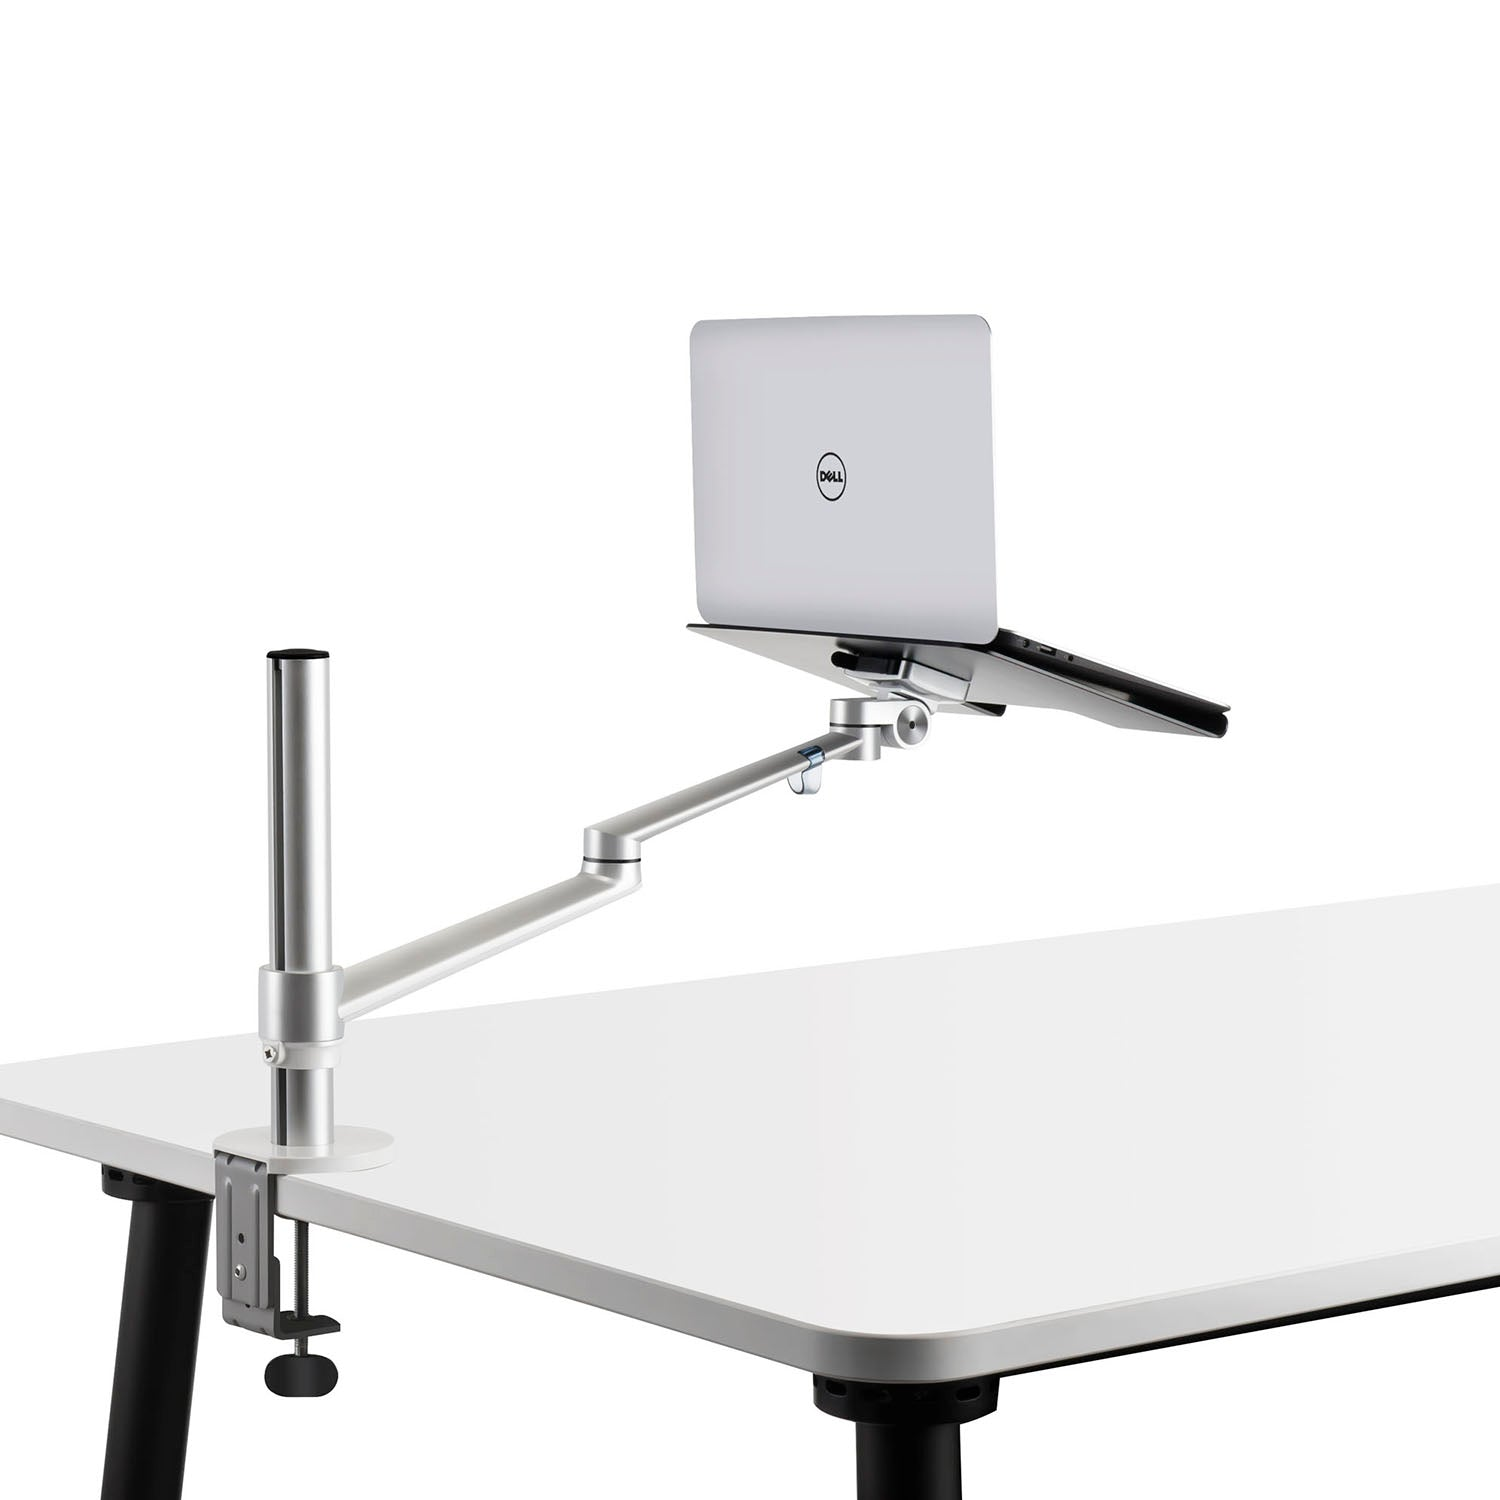 Groovy Thingyclub Adjustable Aluminium Universal 2 In 1 Single Laptop Notebook Or Tablet Desk Mount Arm Stand Bracket With Tilt And Swivel Silver Black Home Interior And Landscaping Synyenasavecom